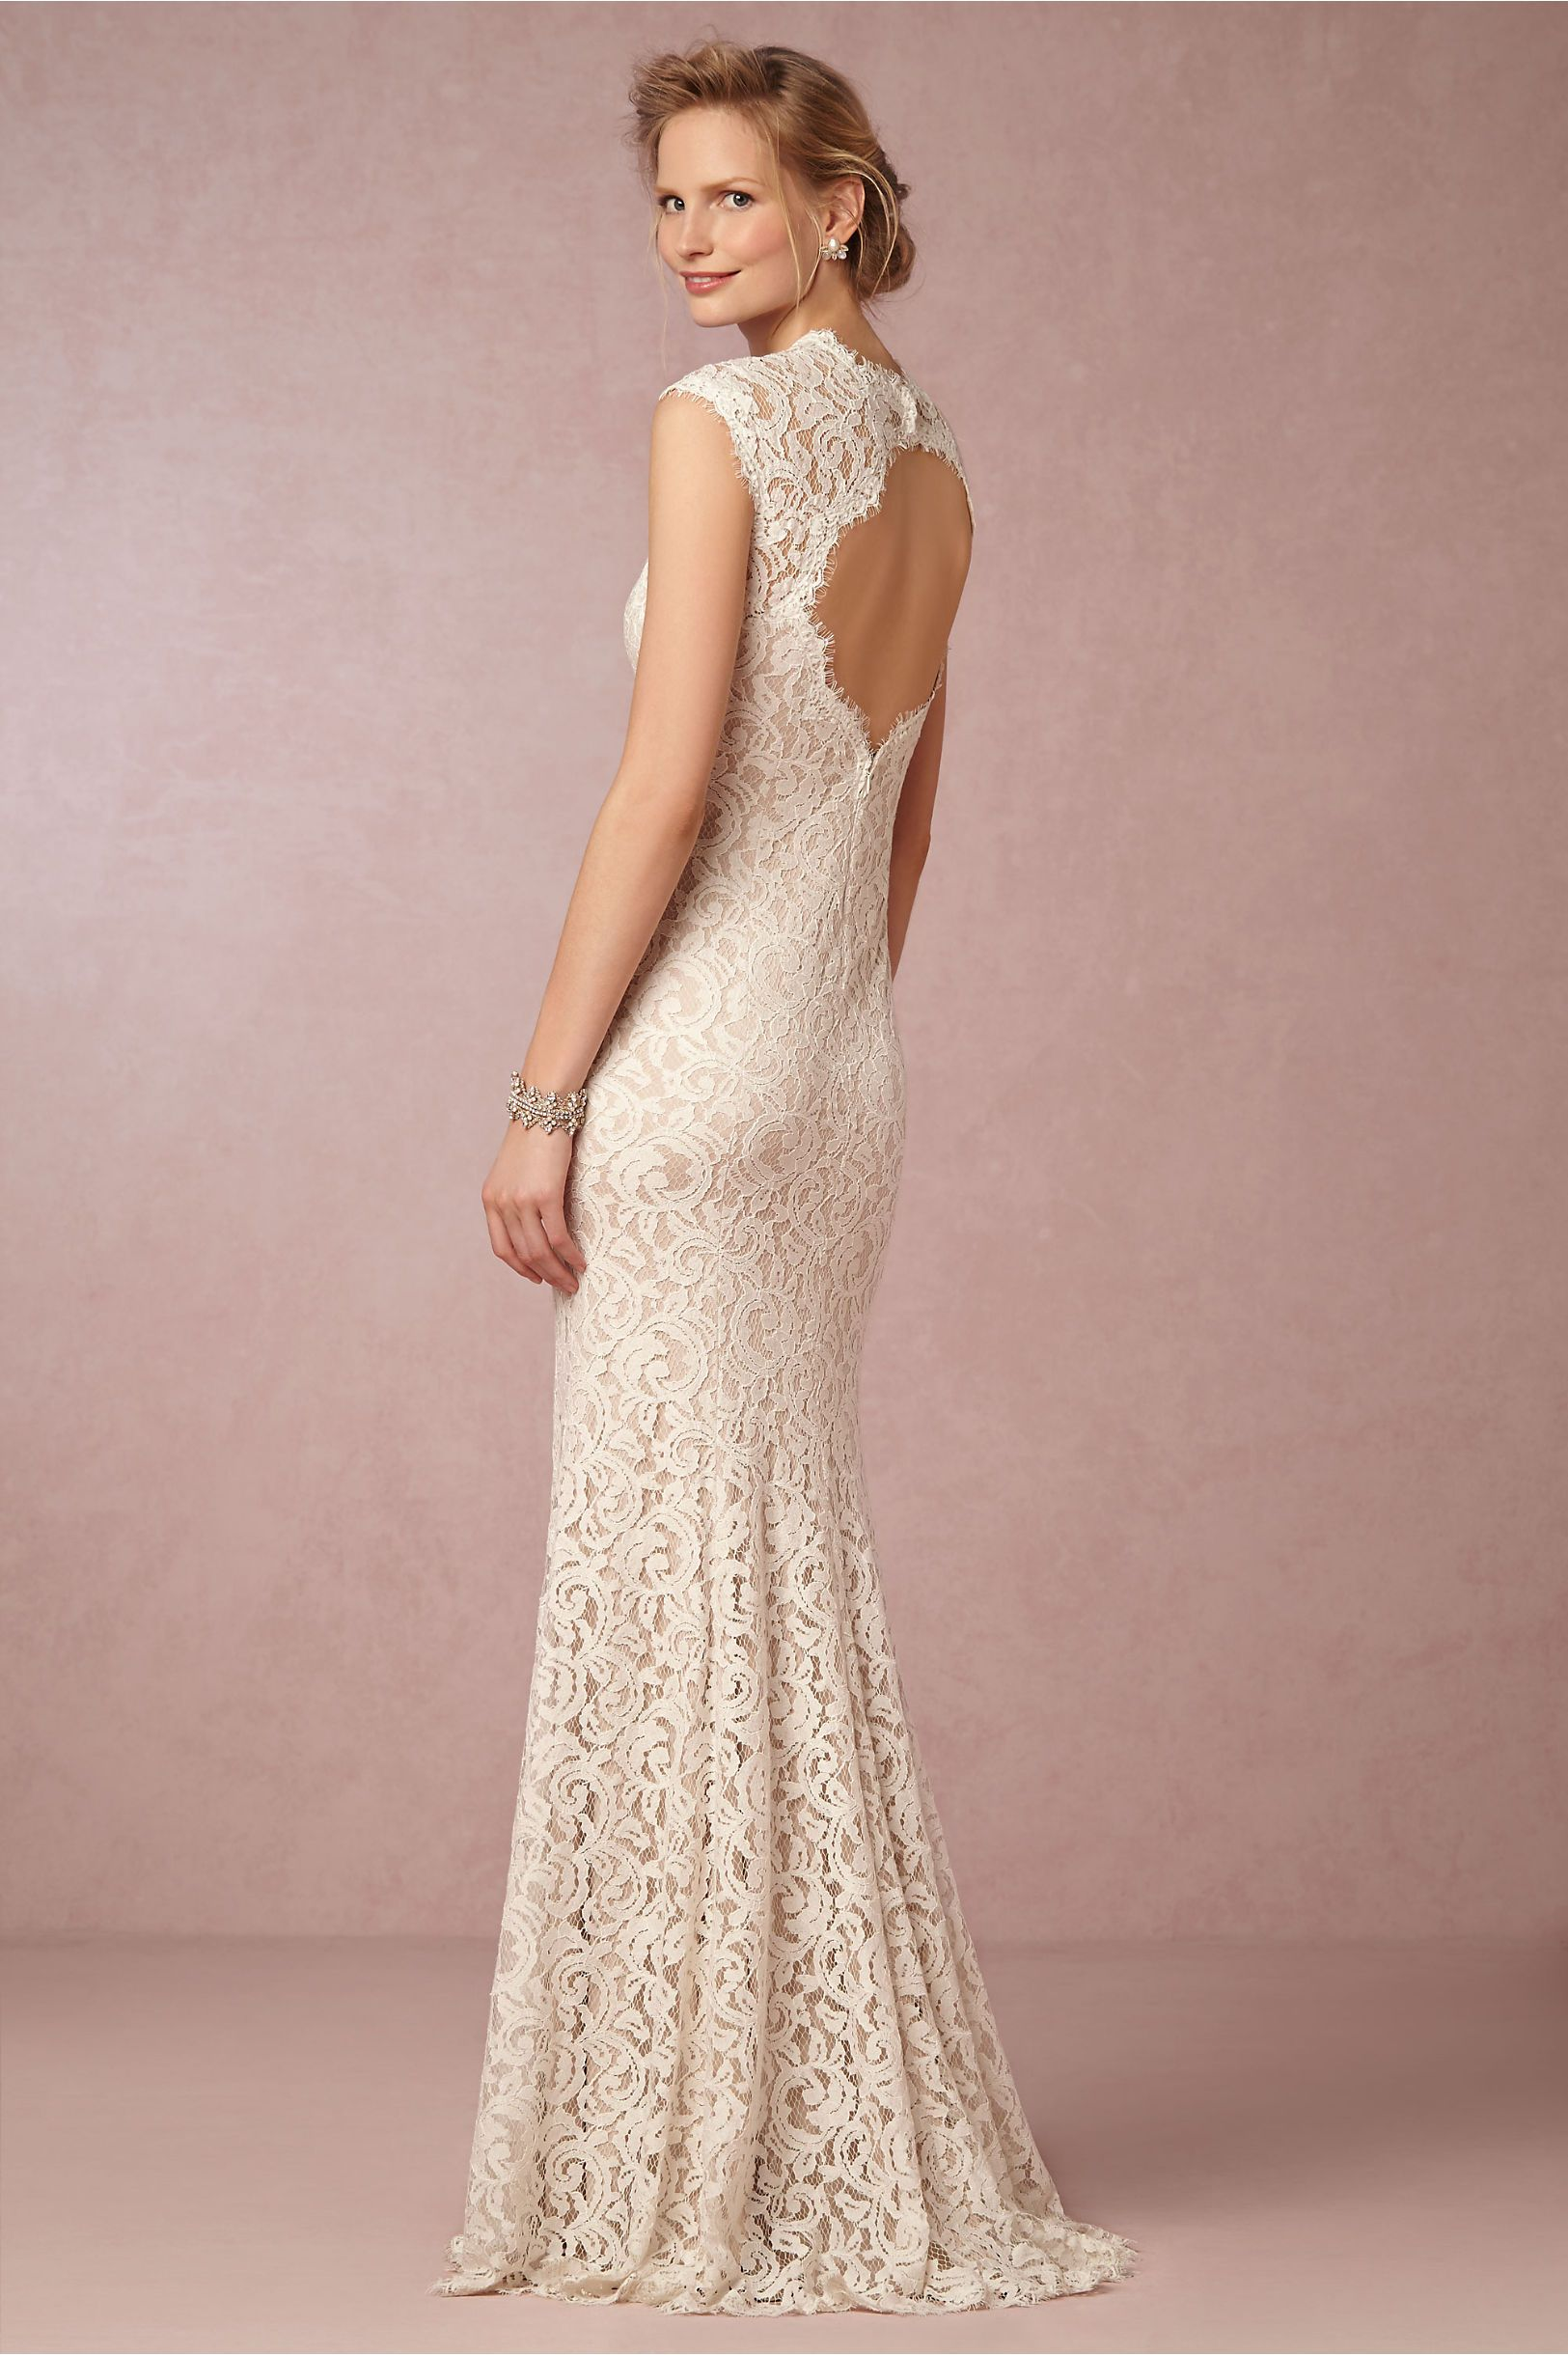 BHLDN Marivana Lace Gown in Bride Wedding Dresses at BHLDN | Wedding ...